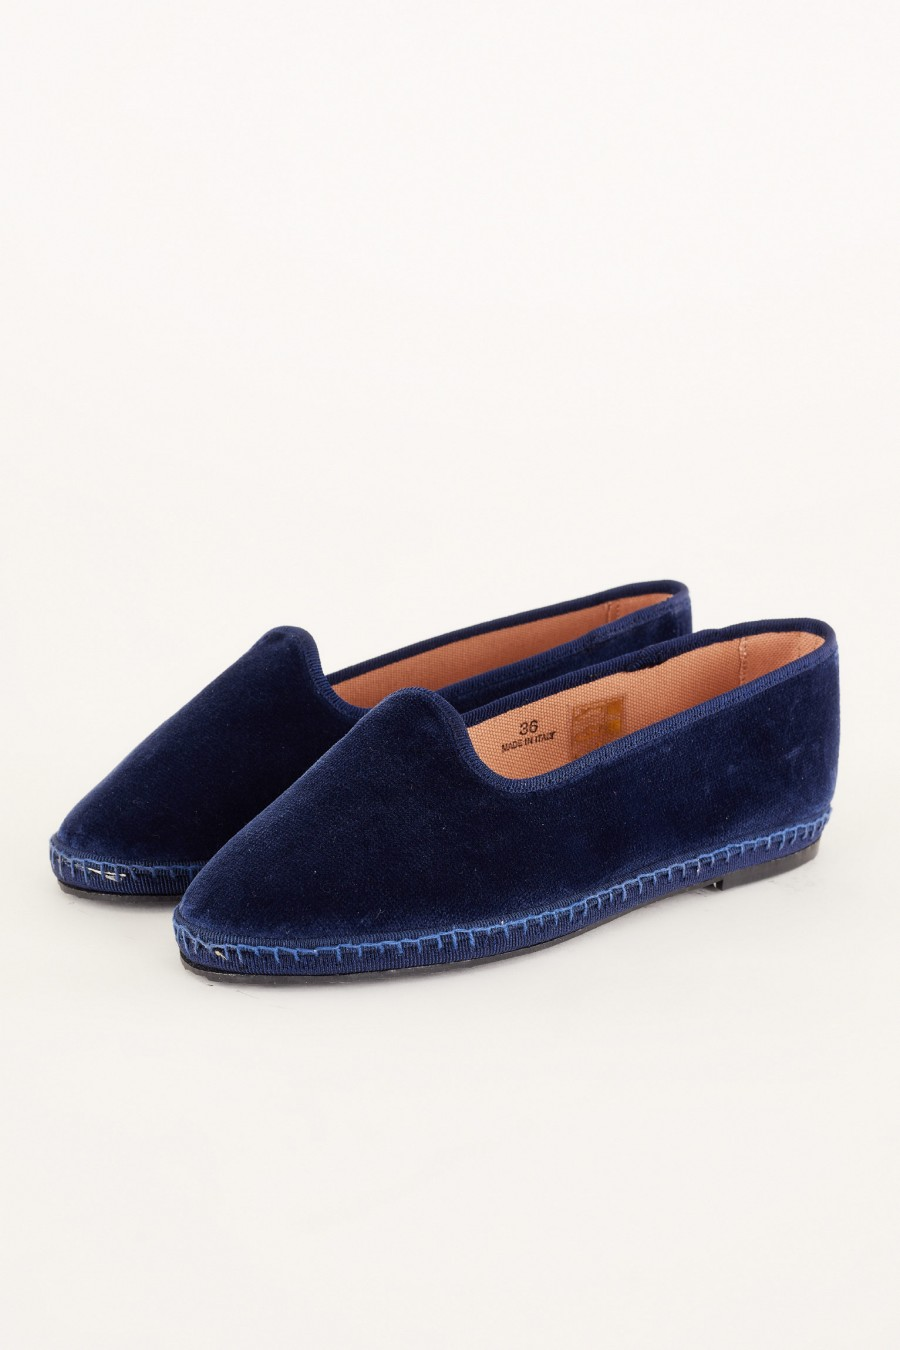 blue velvet friulane shoe slippers